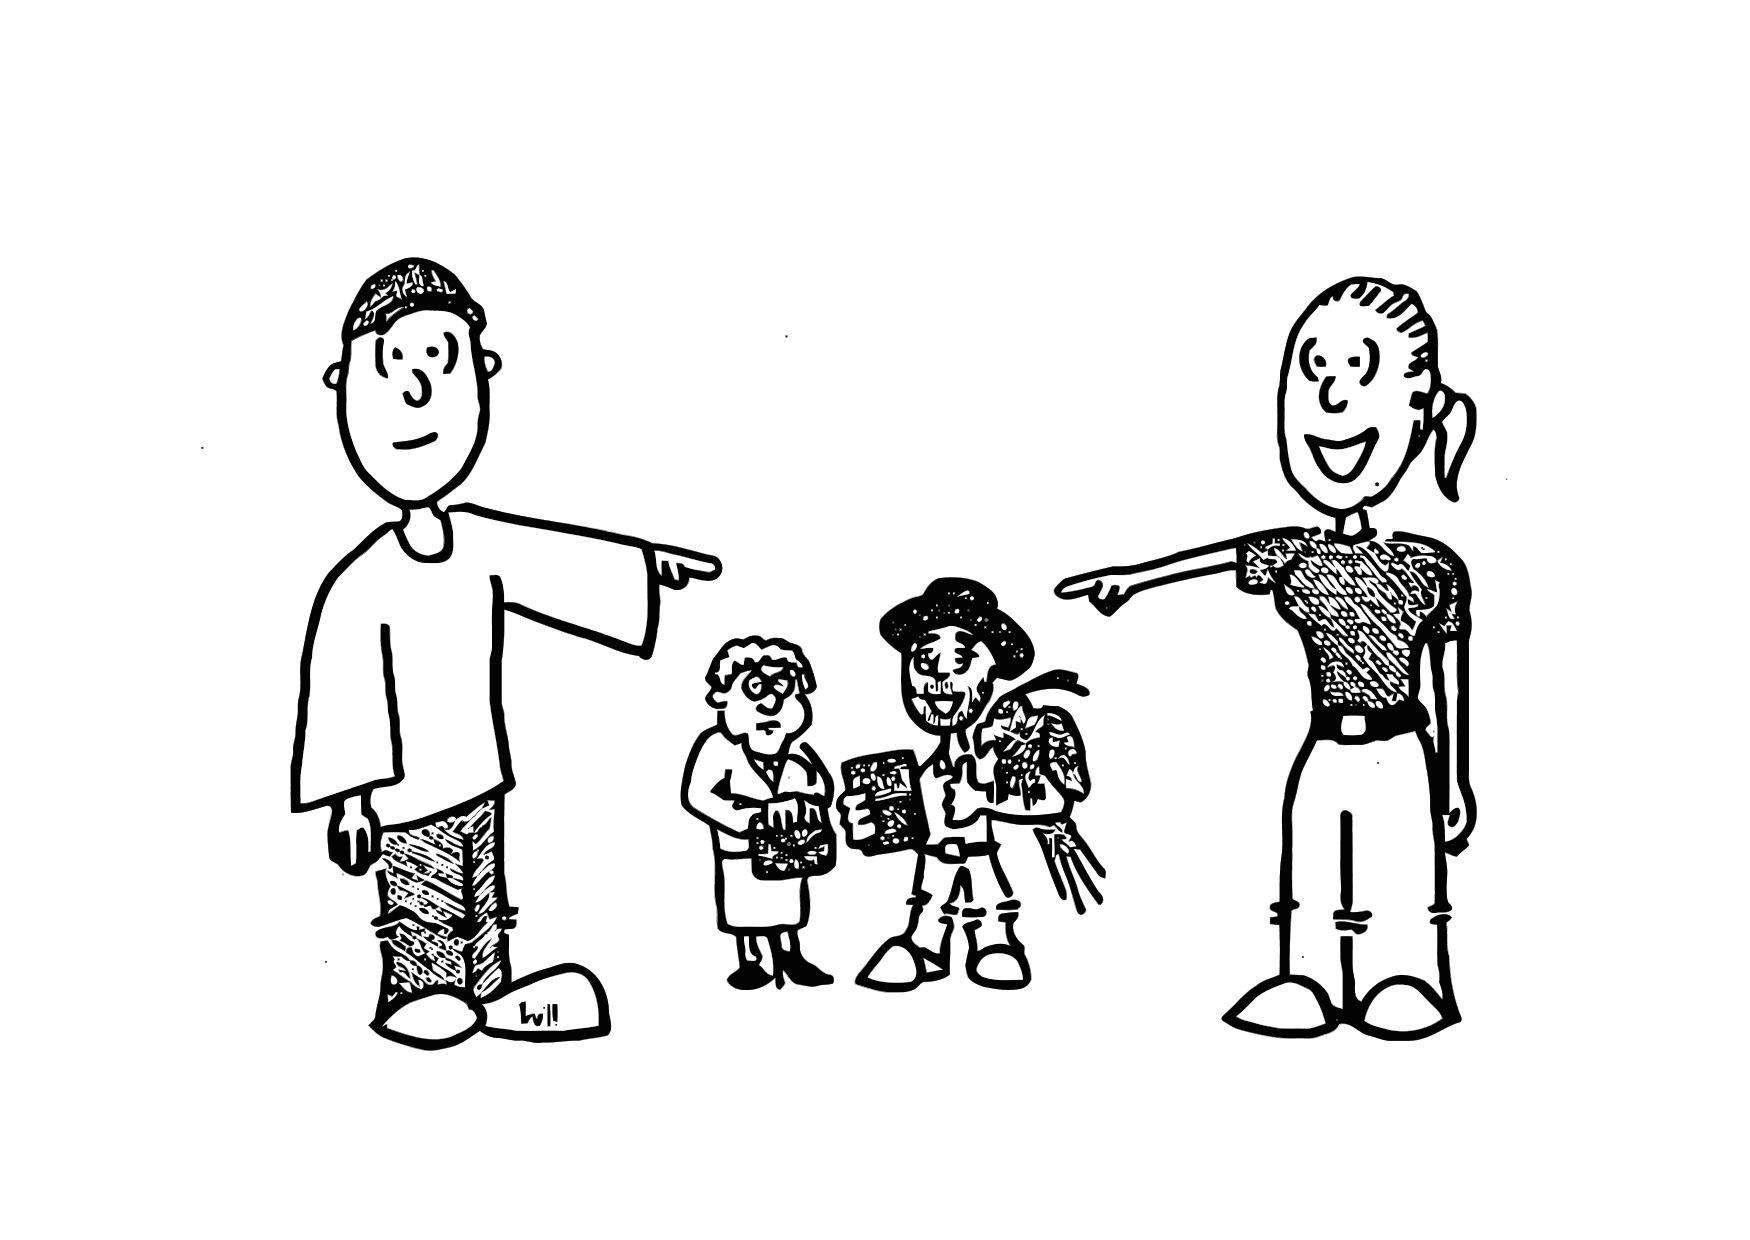 personal pronouns coloring pages - photo#7